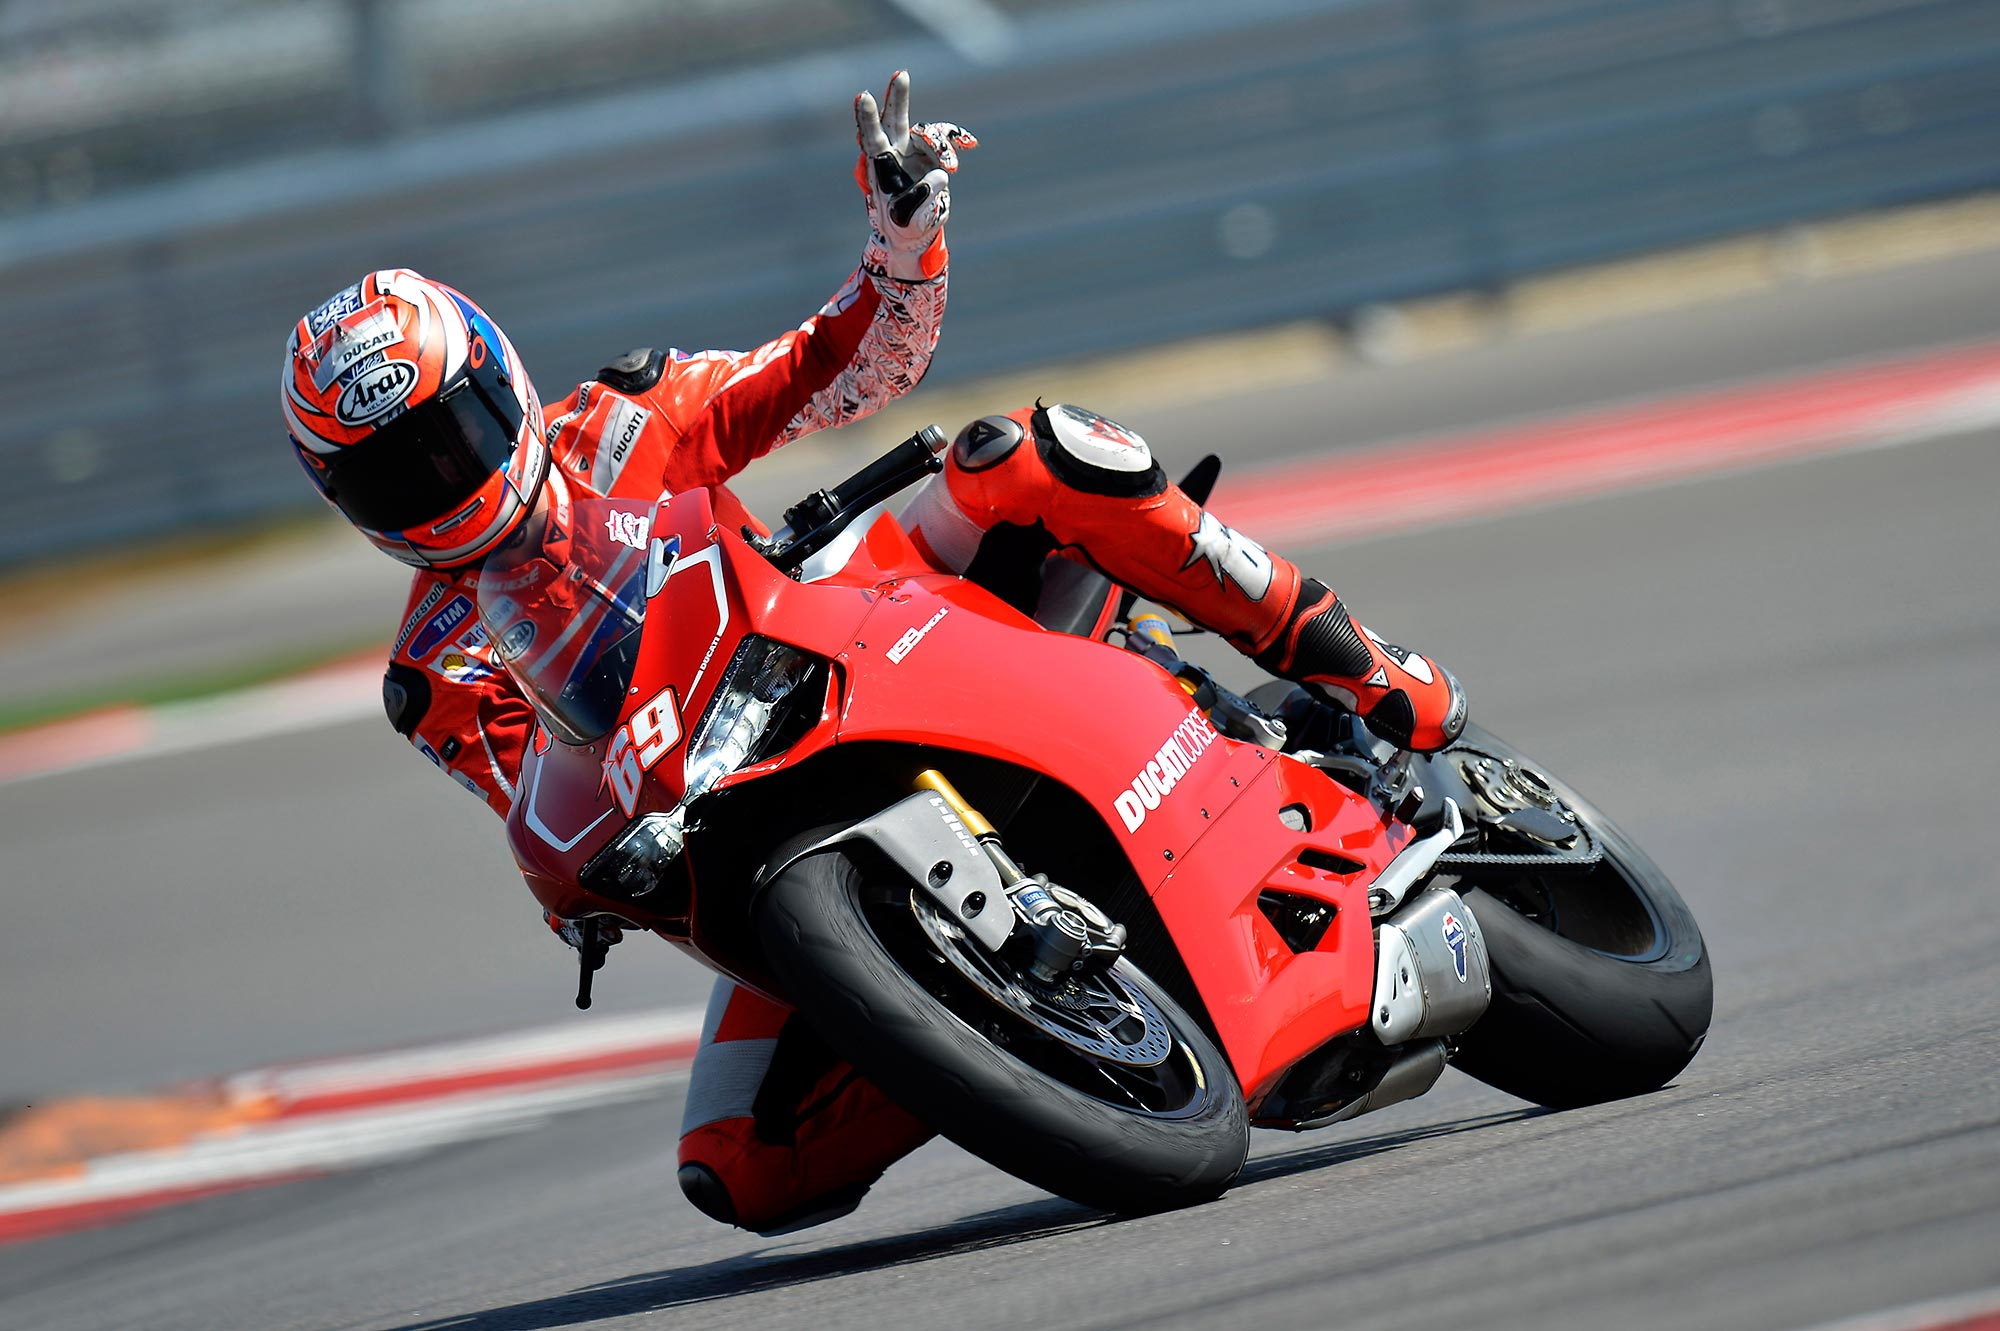 Nicky Hayden Testing the Ducati WSBK Today at Mugello - Asphalt & Rubber